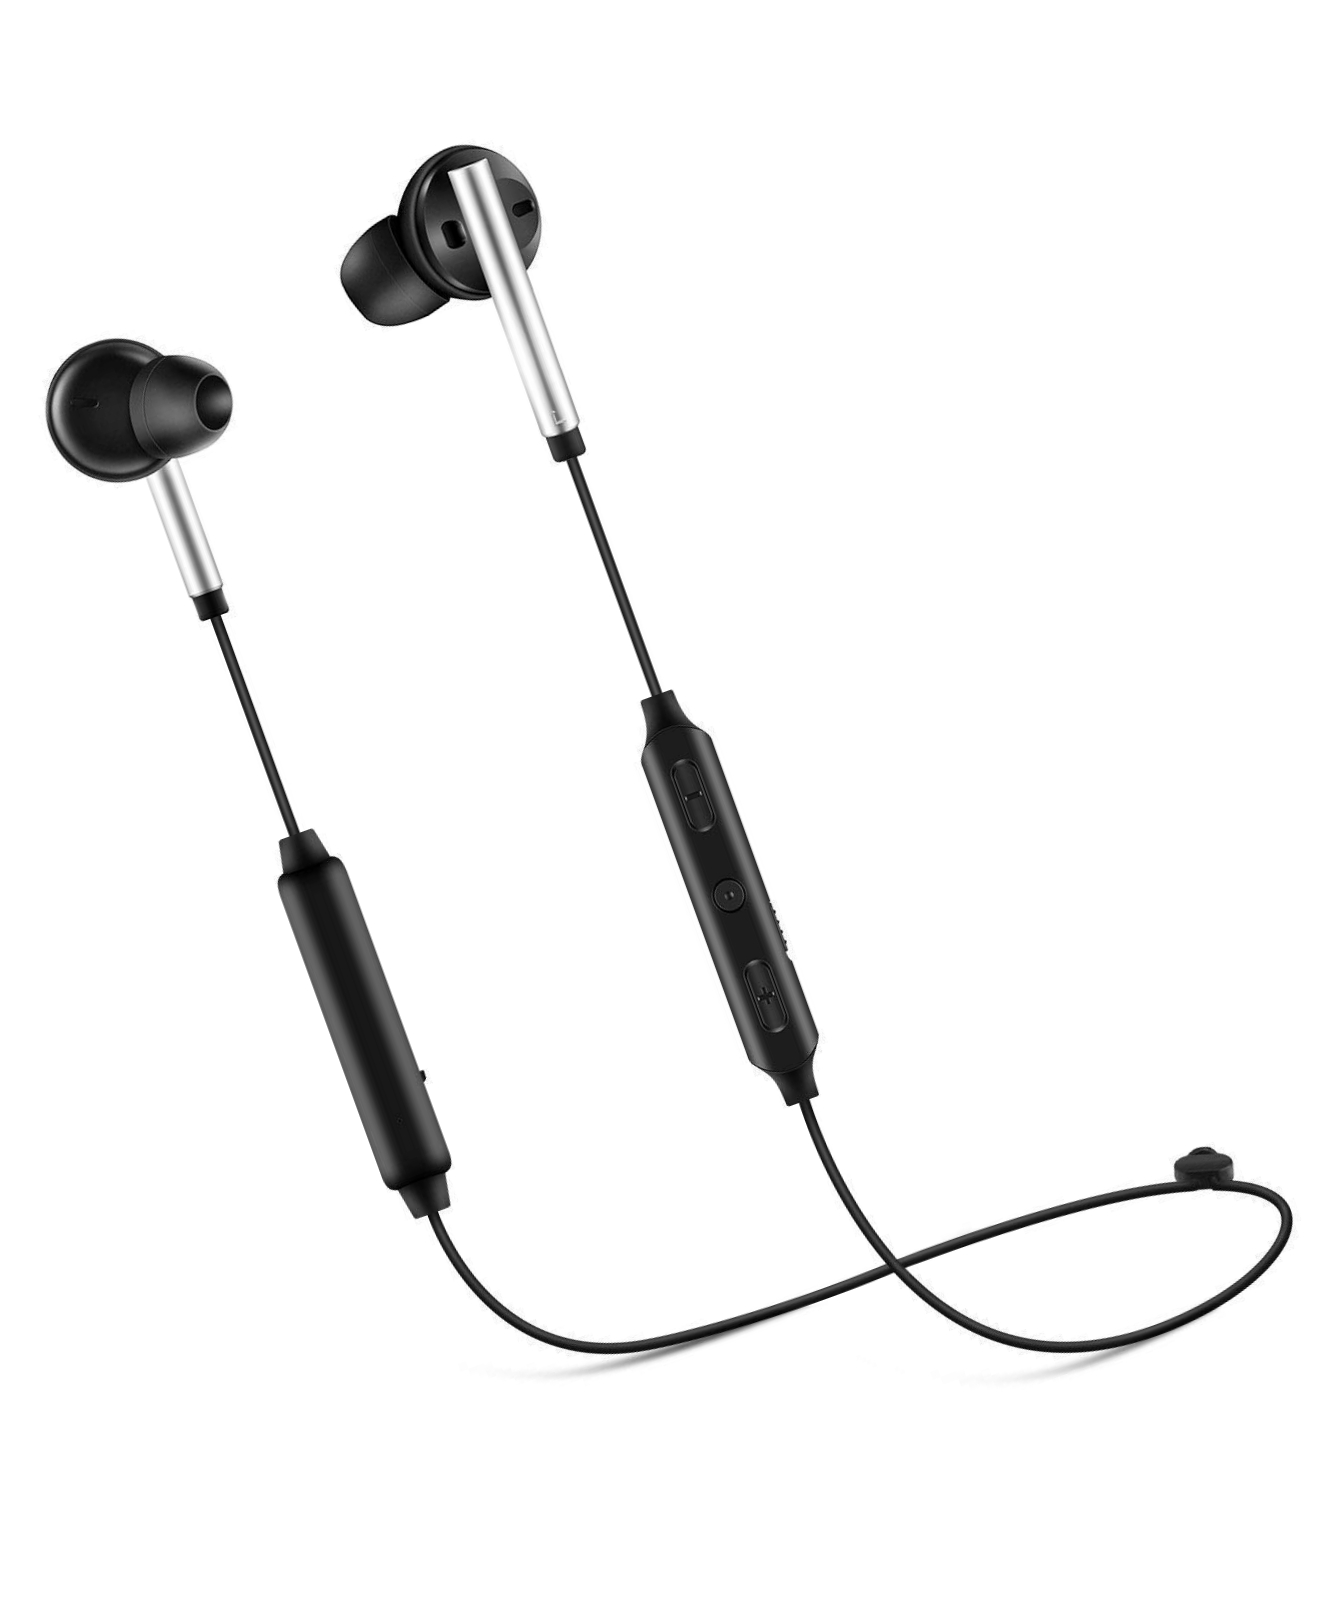 c9a81d5c469 DIZA100 EB03 Active Noise Cancelling Headphones, APTX Support Stereo Sound  In-Ear Wireless Headset Bluetooth ANC Earbuds Microphone 8 Hours Playtime,  ...